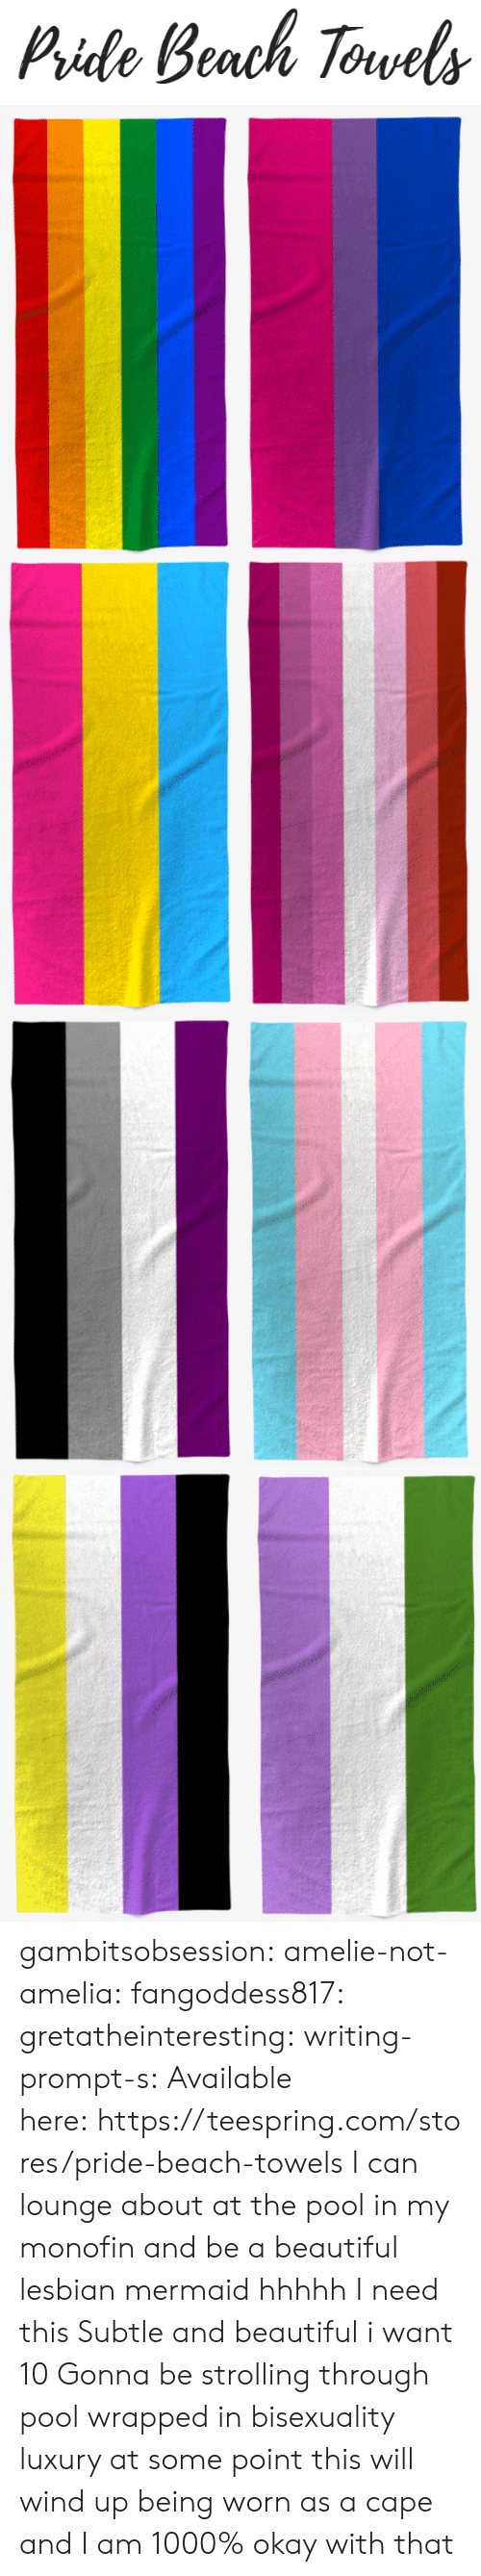 Bisexuality: Pide Beach Torvels gambitsobsession: amelie-not-amelia:   fangoddess817:   gretatheinteresting:   writing-prompt-s: Available here:https://teespring.com/stores/pride-beach-towels  I can lounge about at the pool in my monofin and be a beautiful lesbian mermaid hhhhh I need this   Subtle and beautiful i want 10   Gonna be strolling through pool wrapped in bisexuality luxury    at some point this will wind up being worn as a cape and I am 1000% okay with that